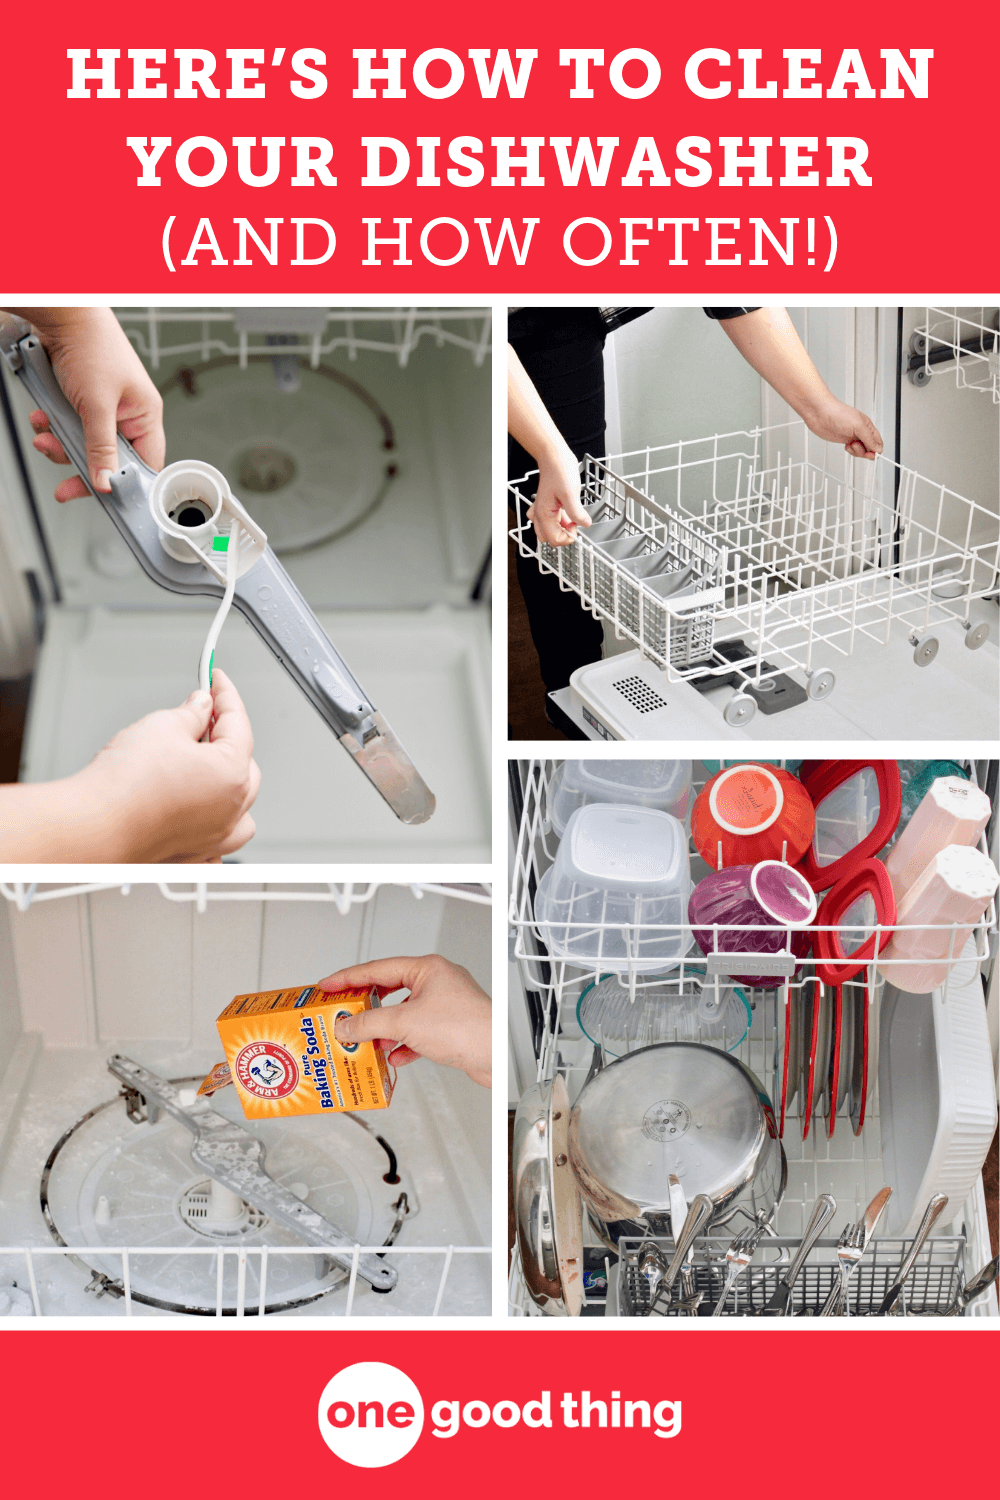 How To Clean A Dishwasher In 3 Steps Cleaning Your Dishwasher